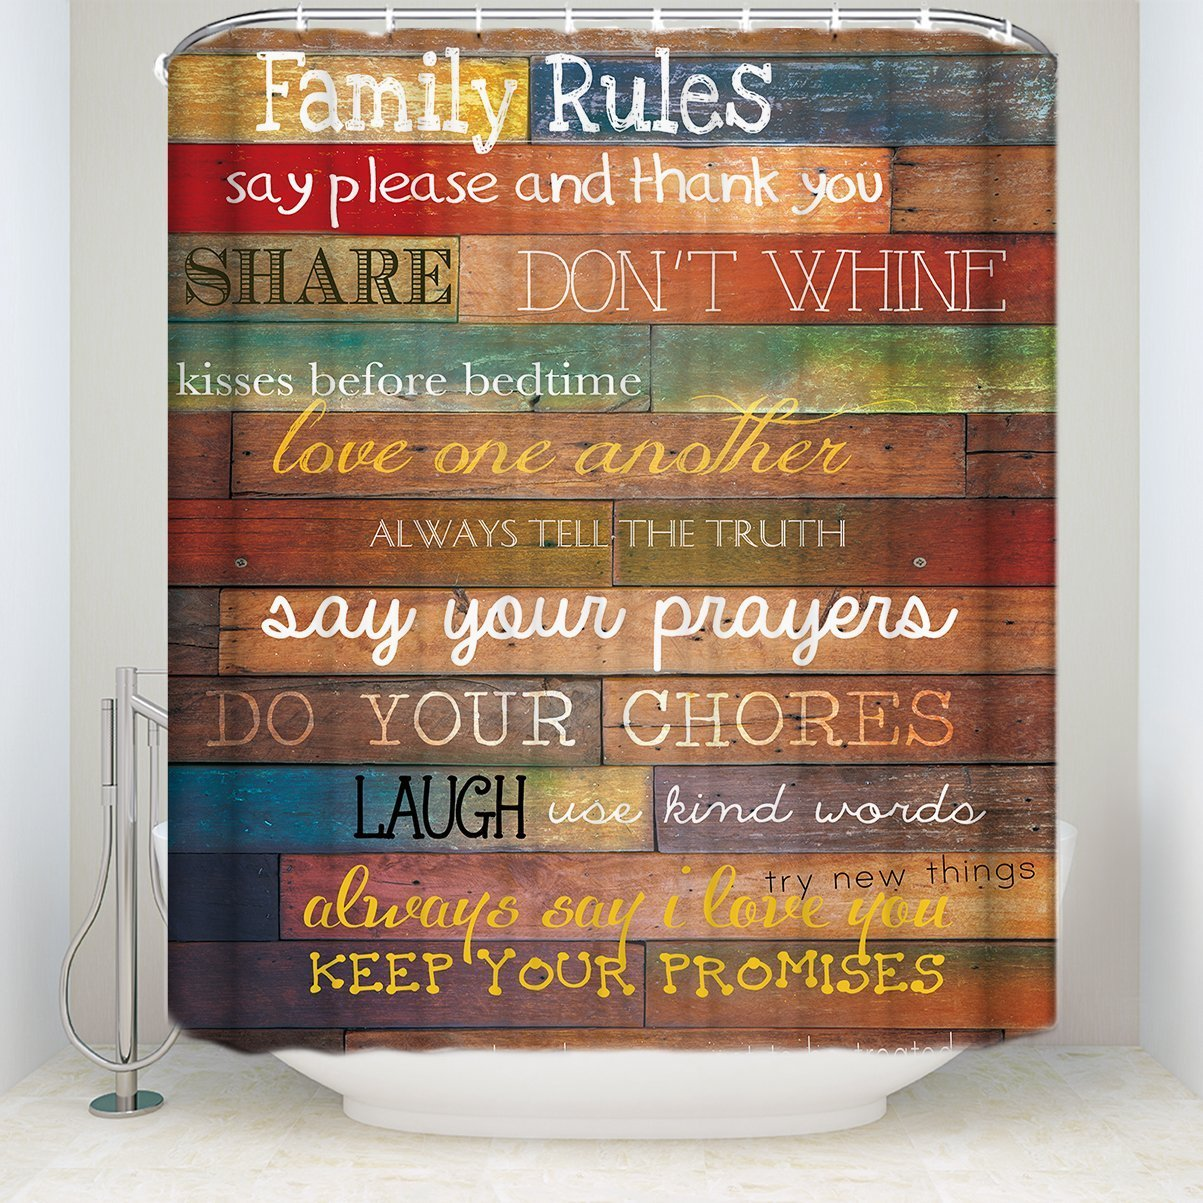 SUN-Shine Family Rules Rustic Wood Fabric Mildew New Waterproof Shower Curtain Bathroom Decor Sets with Hooks Fabric 36x72IN